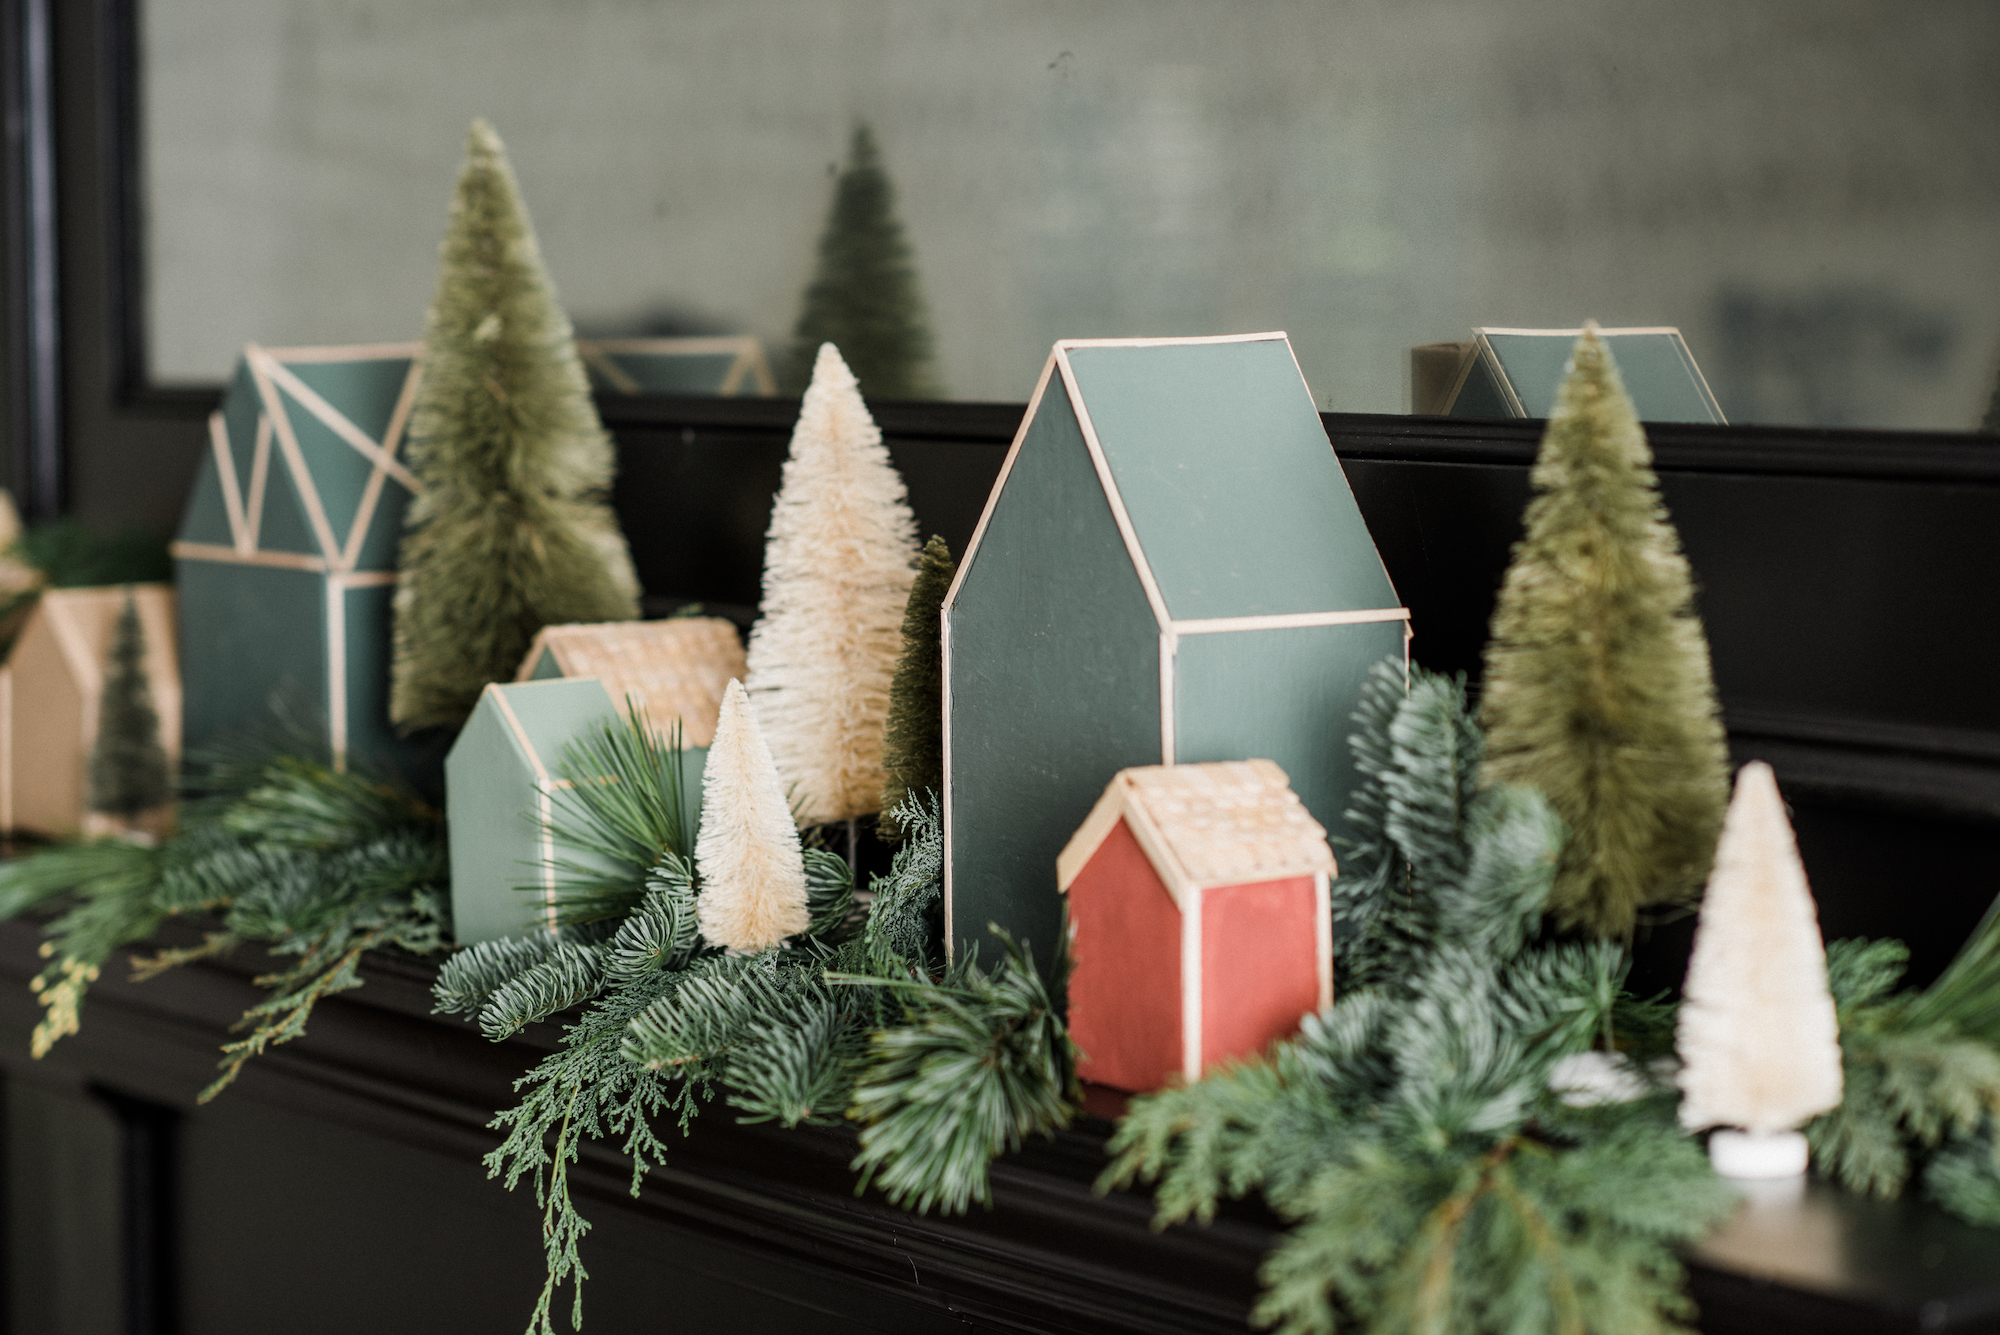 ... attached to a little Christmas village like this one. We love the way these handmade houses, inspired by our holiday visual display at the market, make ...